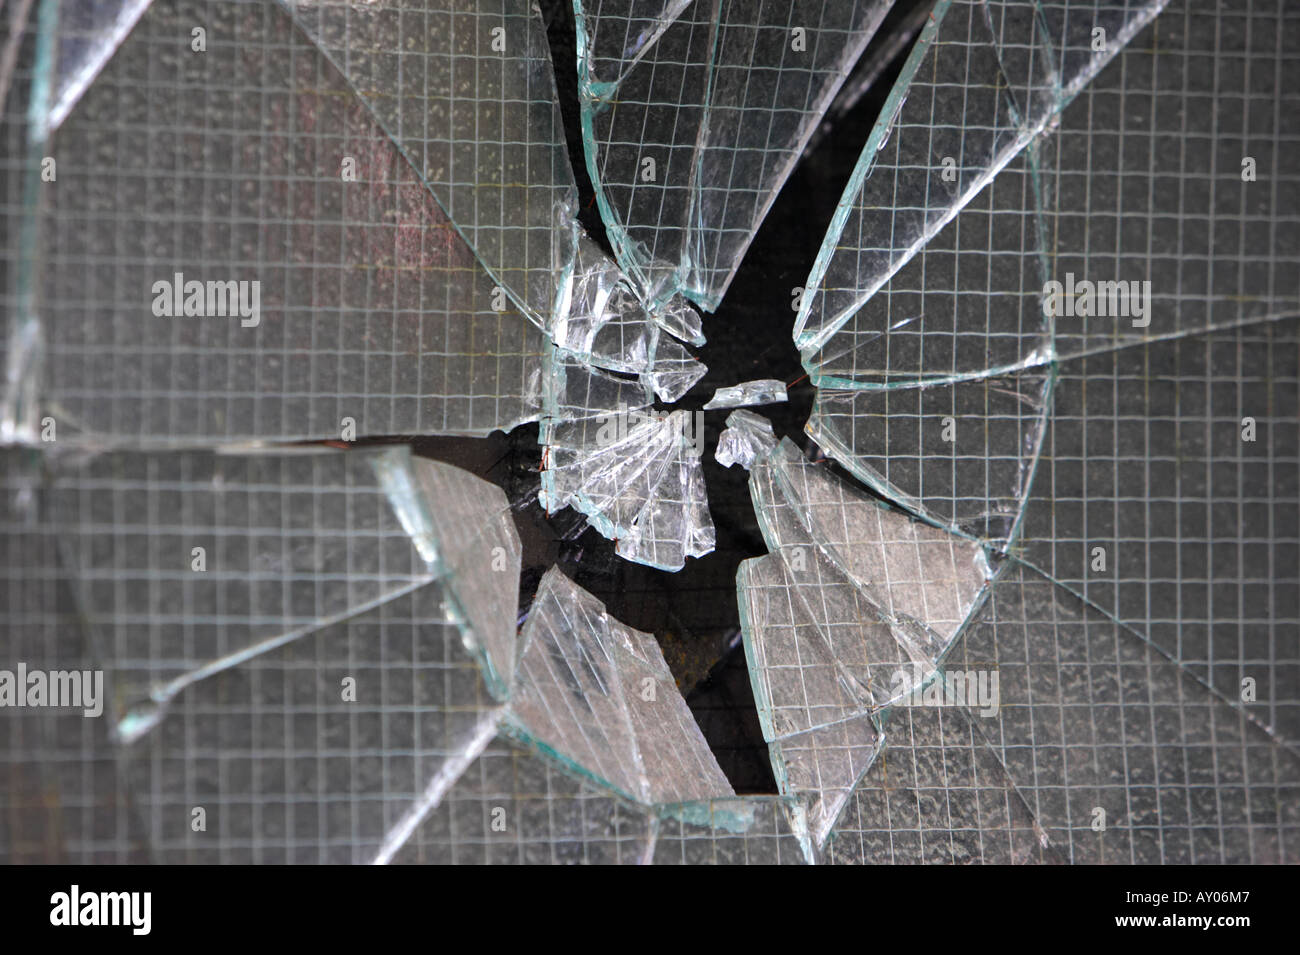 smashed reinforced glass window in Belfast City Centre - Stock Image